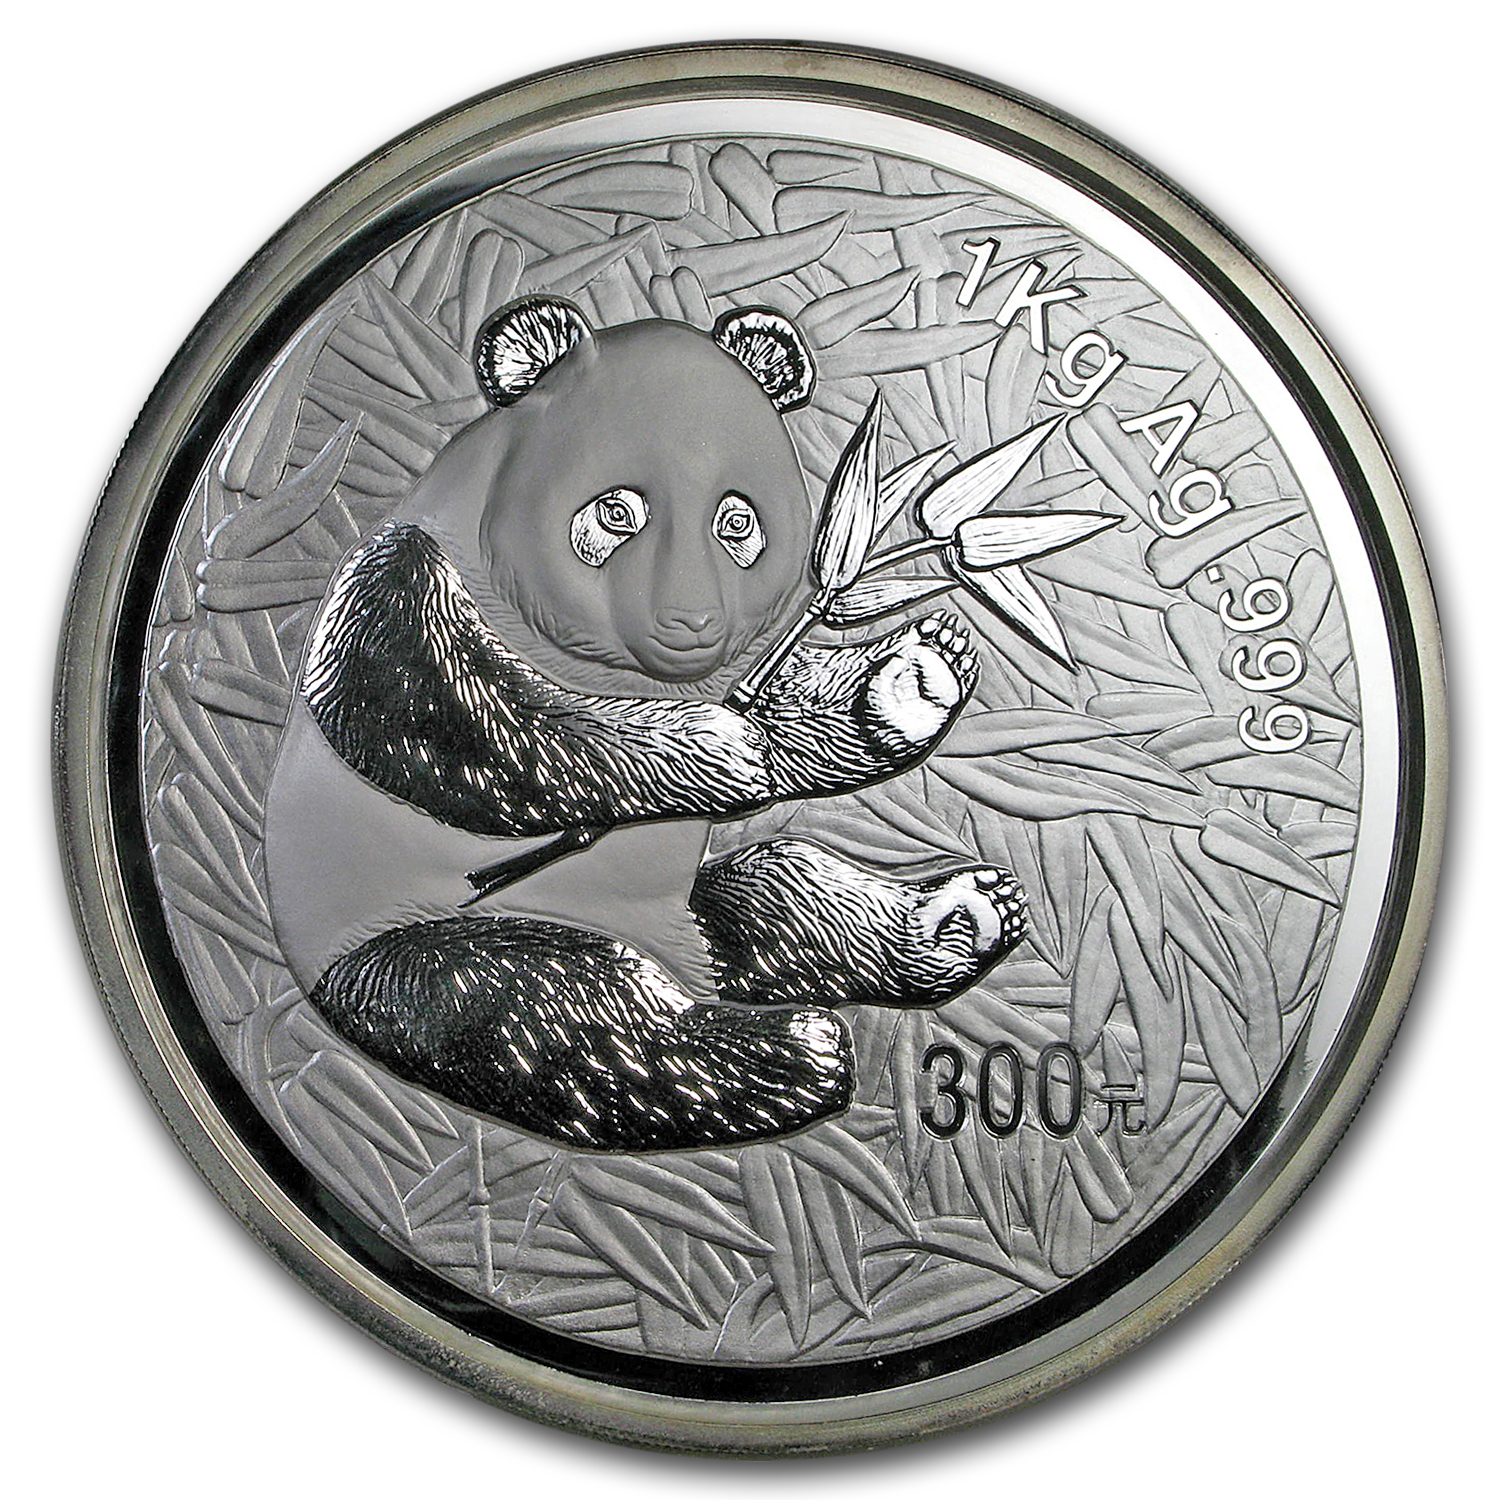 2000 China 1 kilo Silver Panda Proof (w/Box & COA)